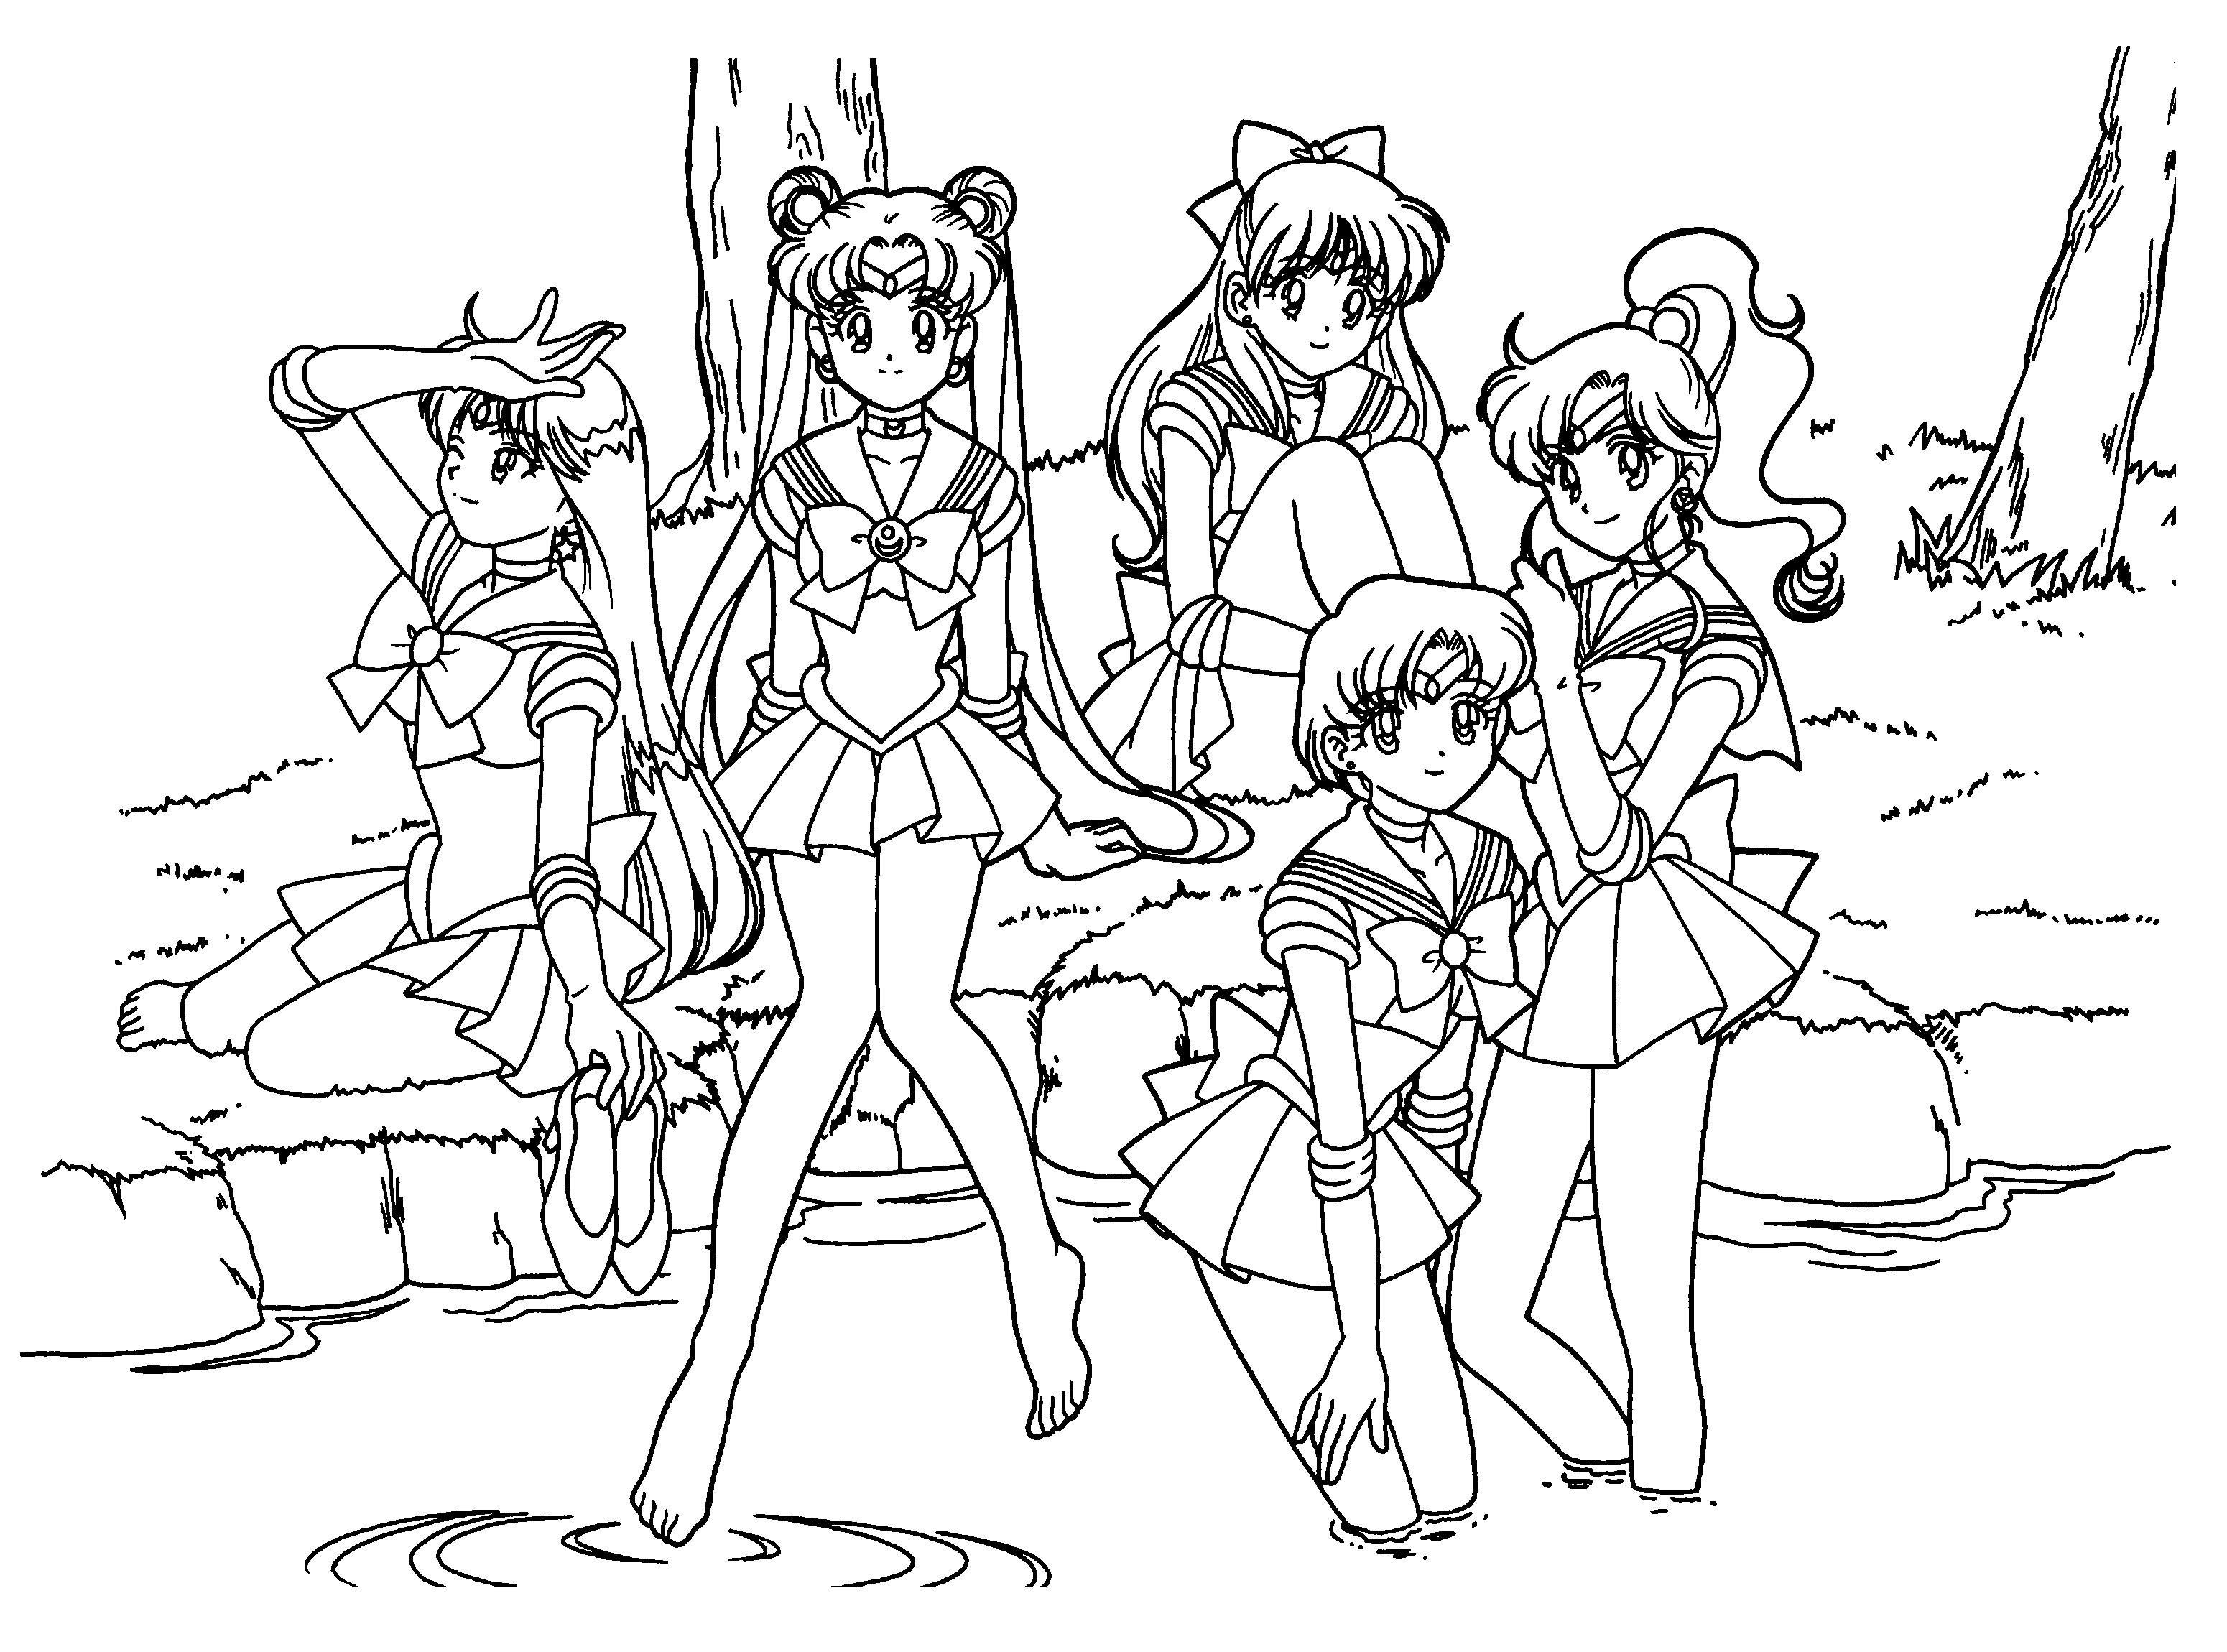 sailor moon group coloring pages sailor moon group 1 by drawingblank2 on deviantart